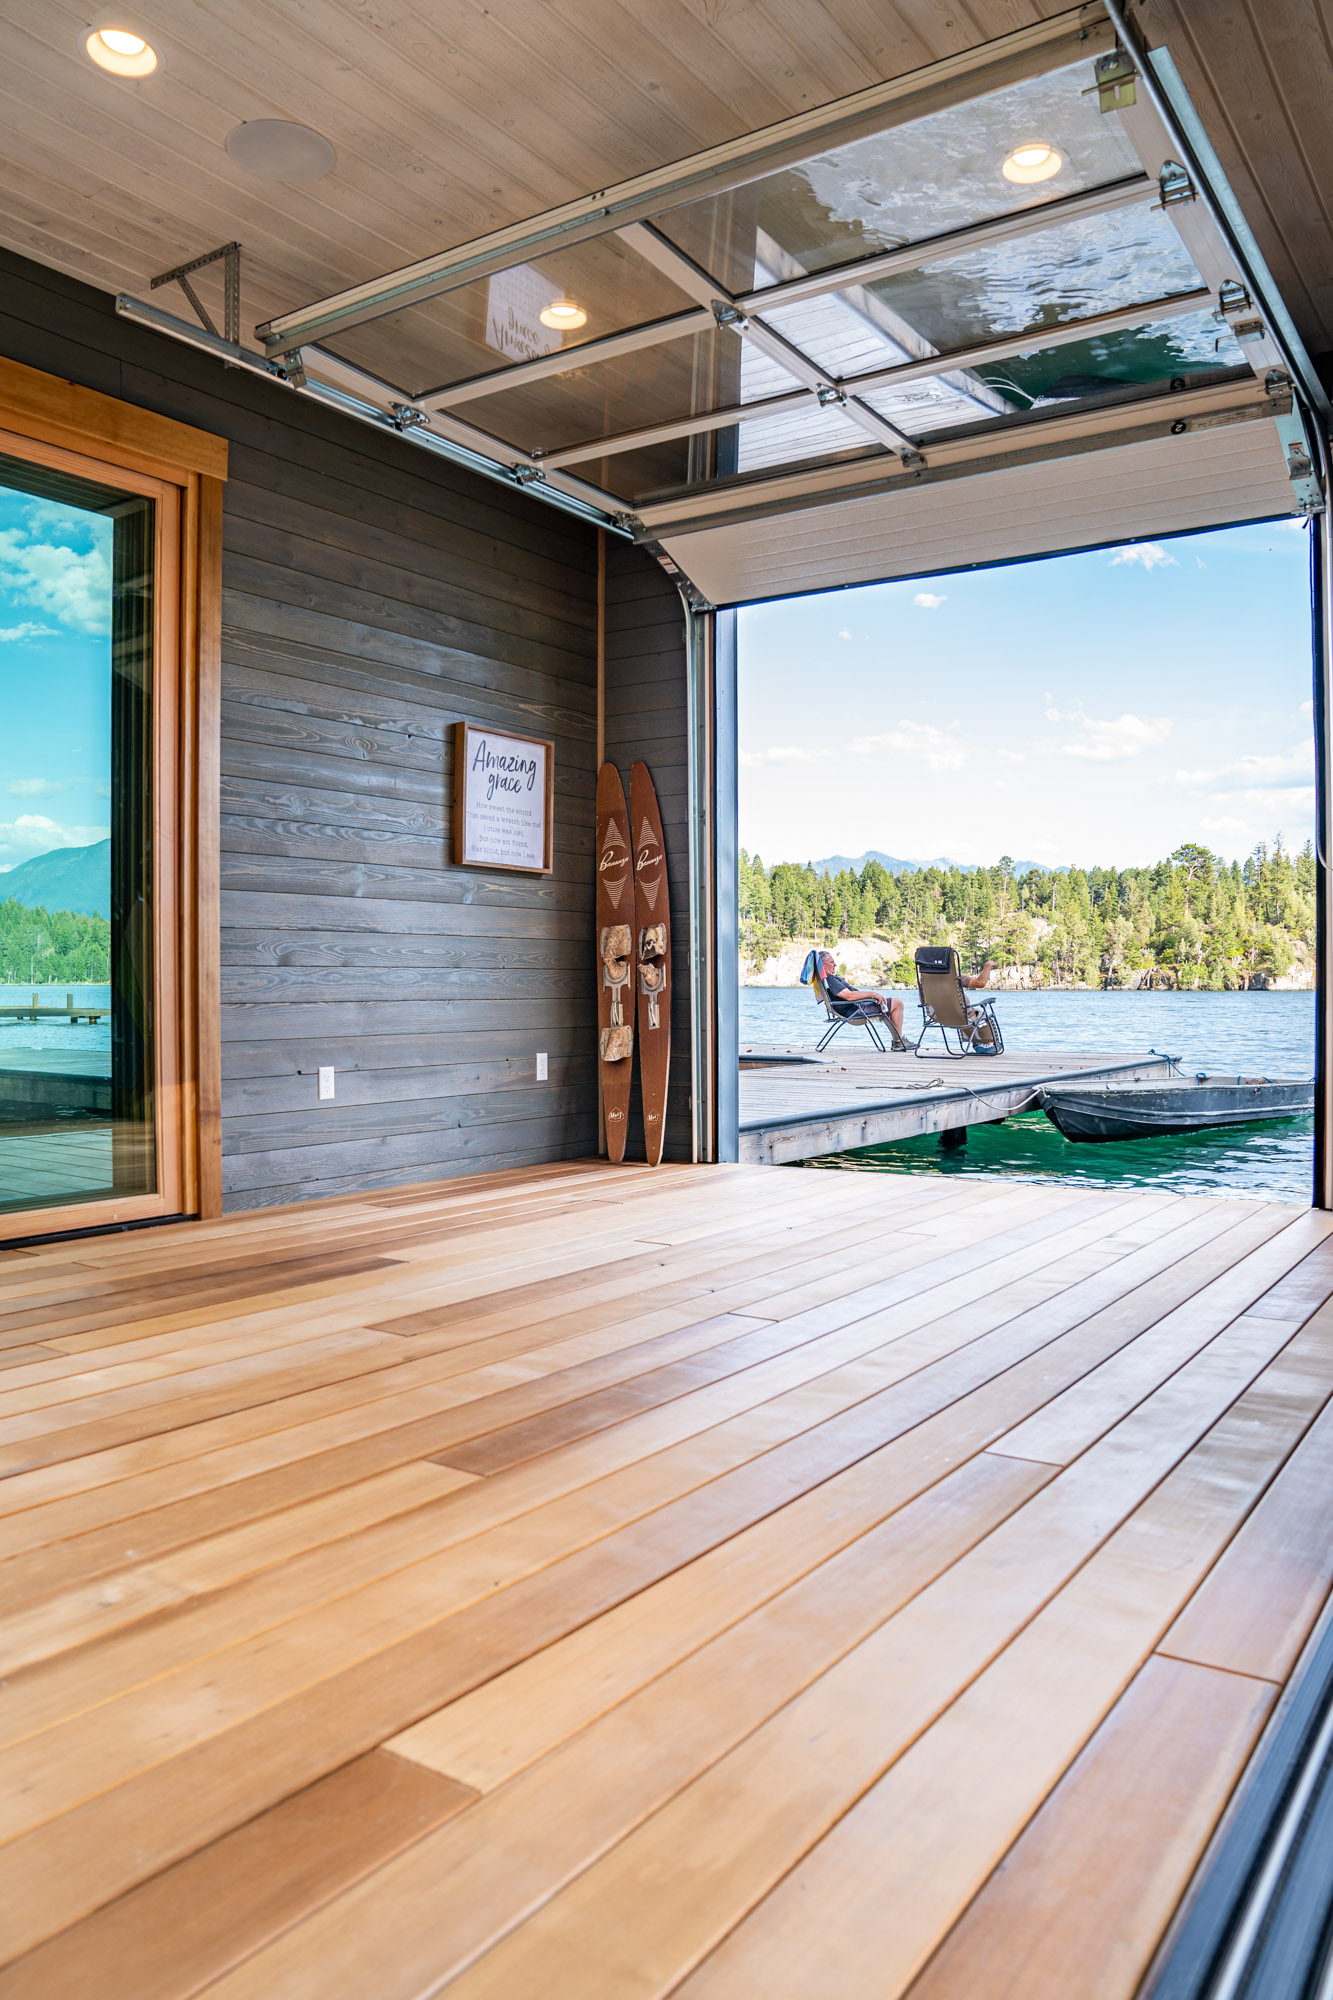 Durable Thermally Modified Decking for Docks-67